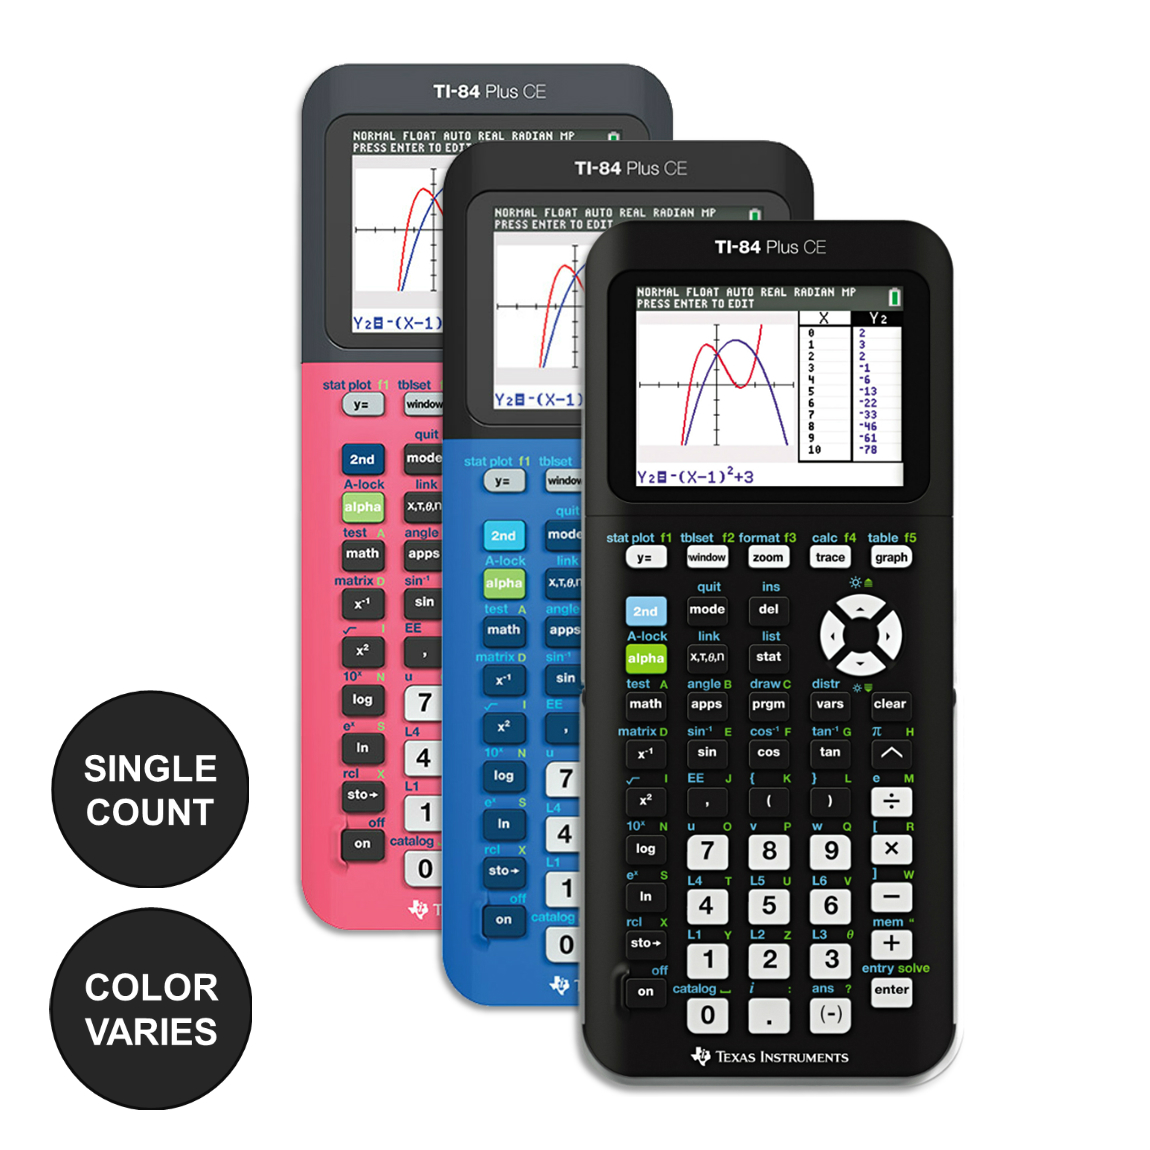 Texas Instruments Ti-84 Plus CE Graphing Calculator (Color: Assorted)